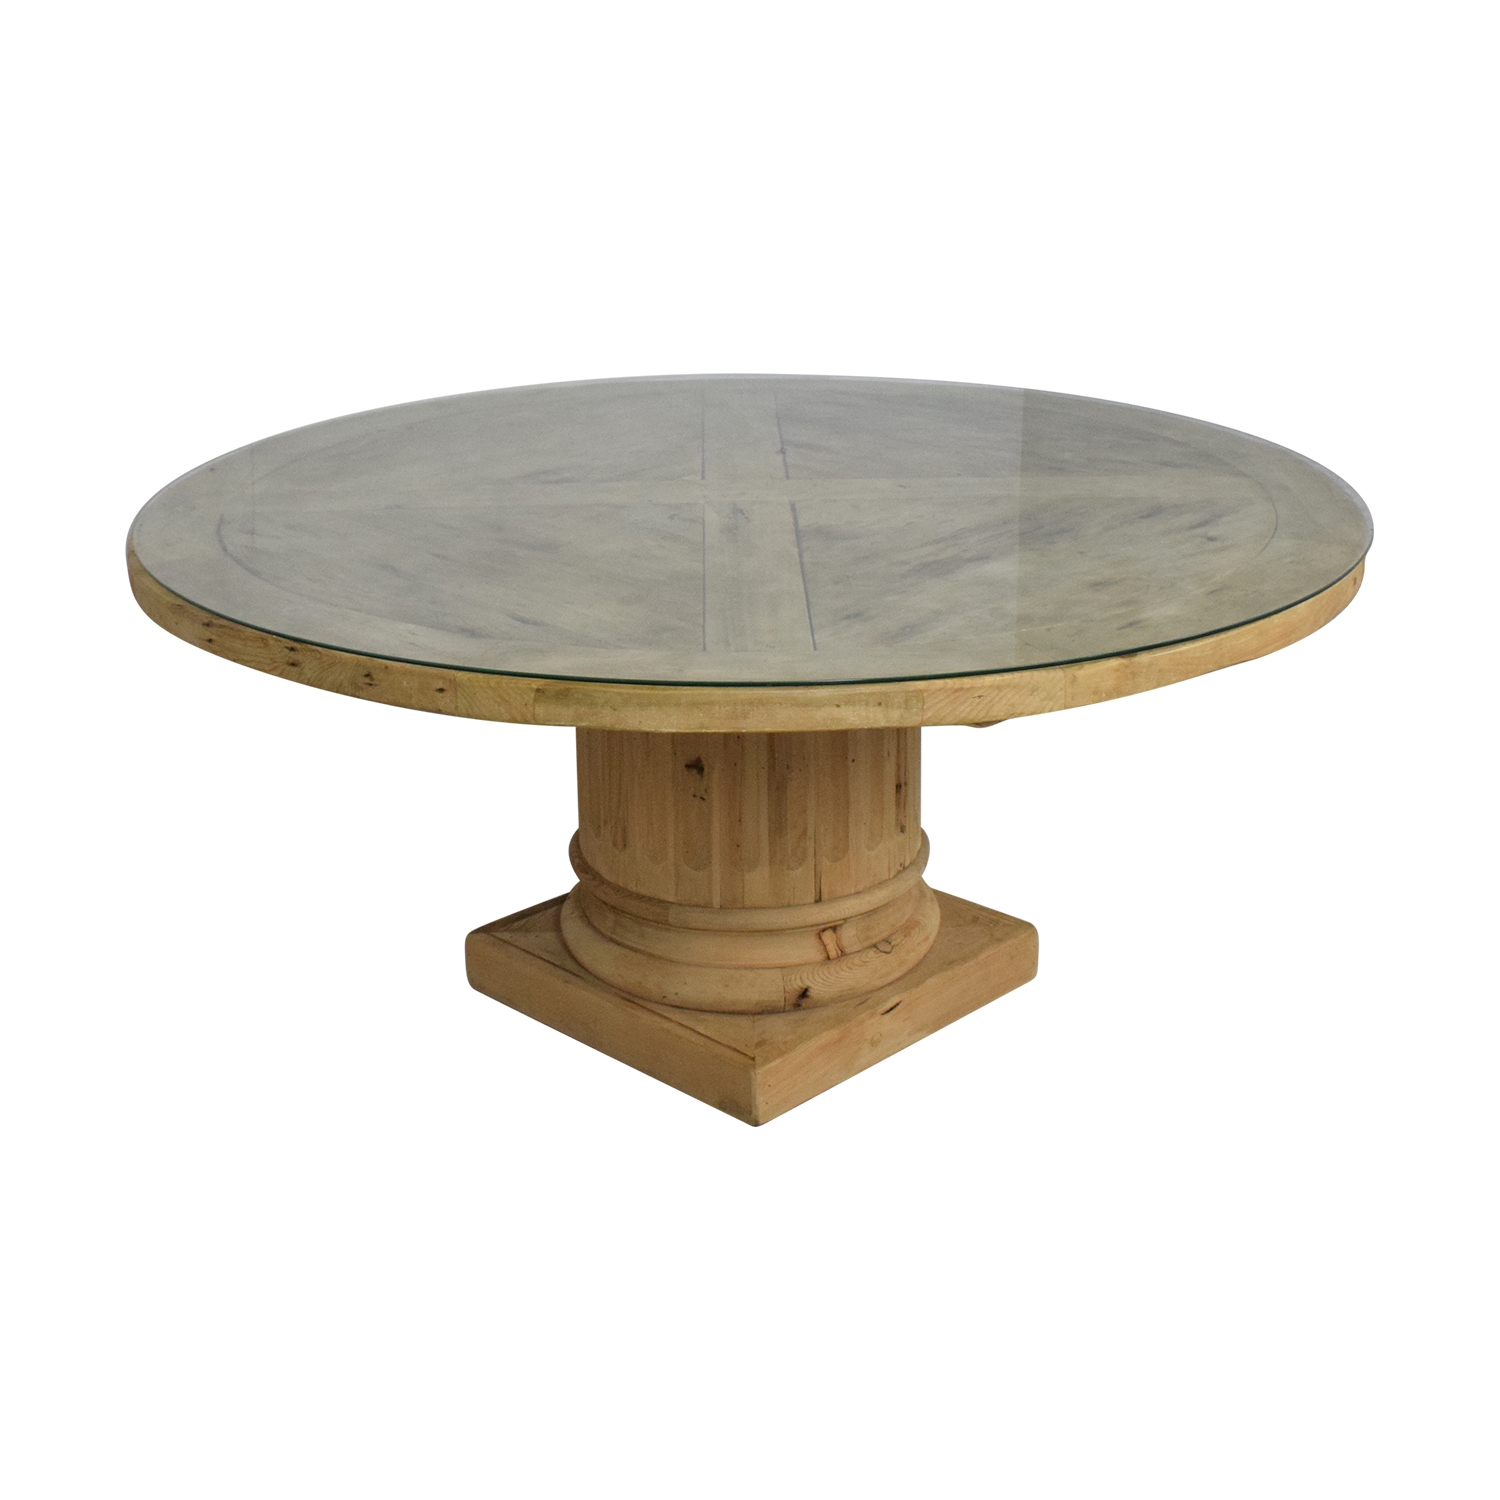 Restoration Hardware Restoration Hardware Salvaged Wood Architectural Column Dining Table for sale